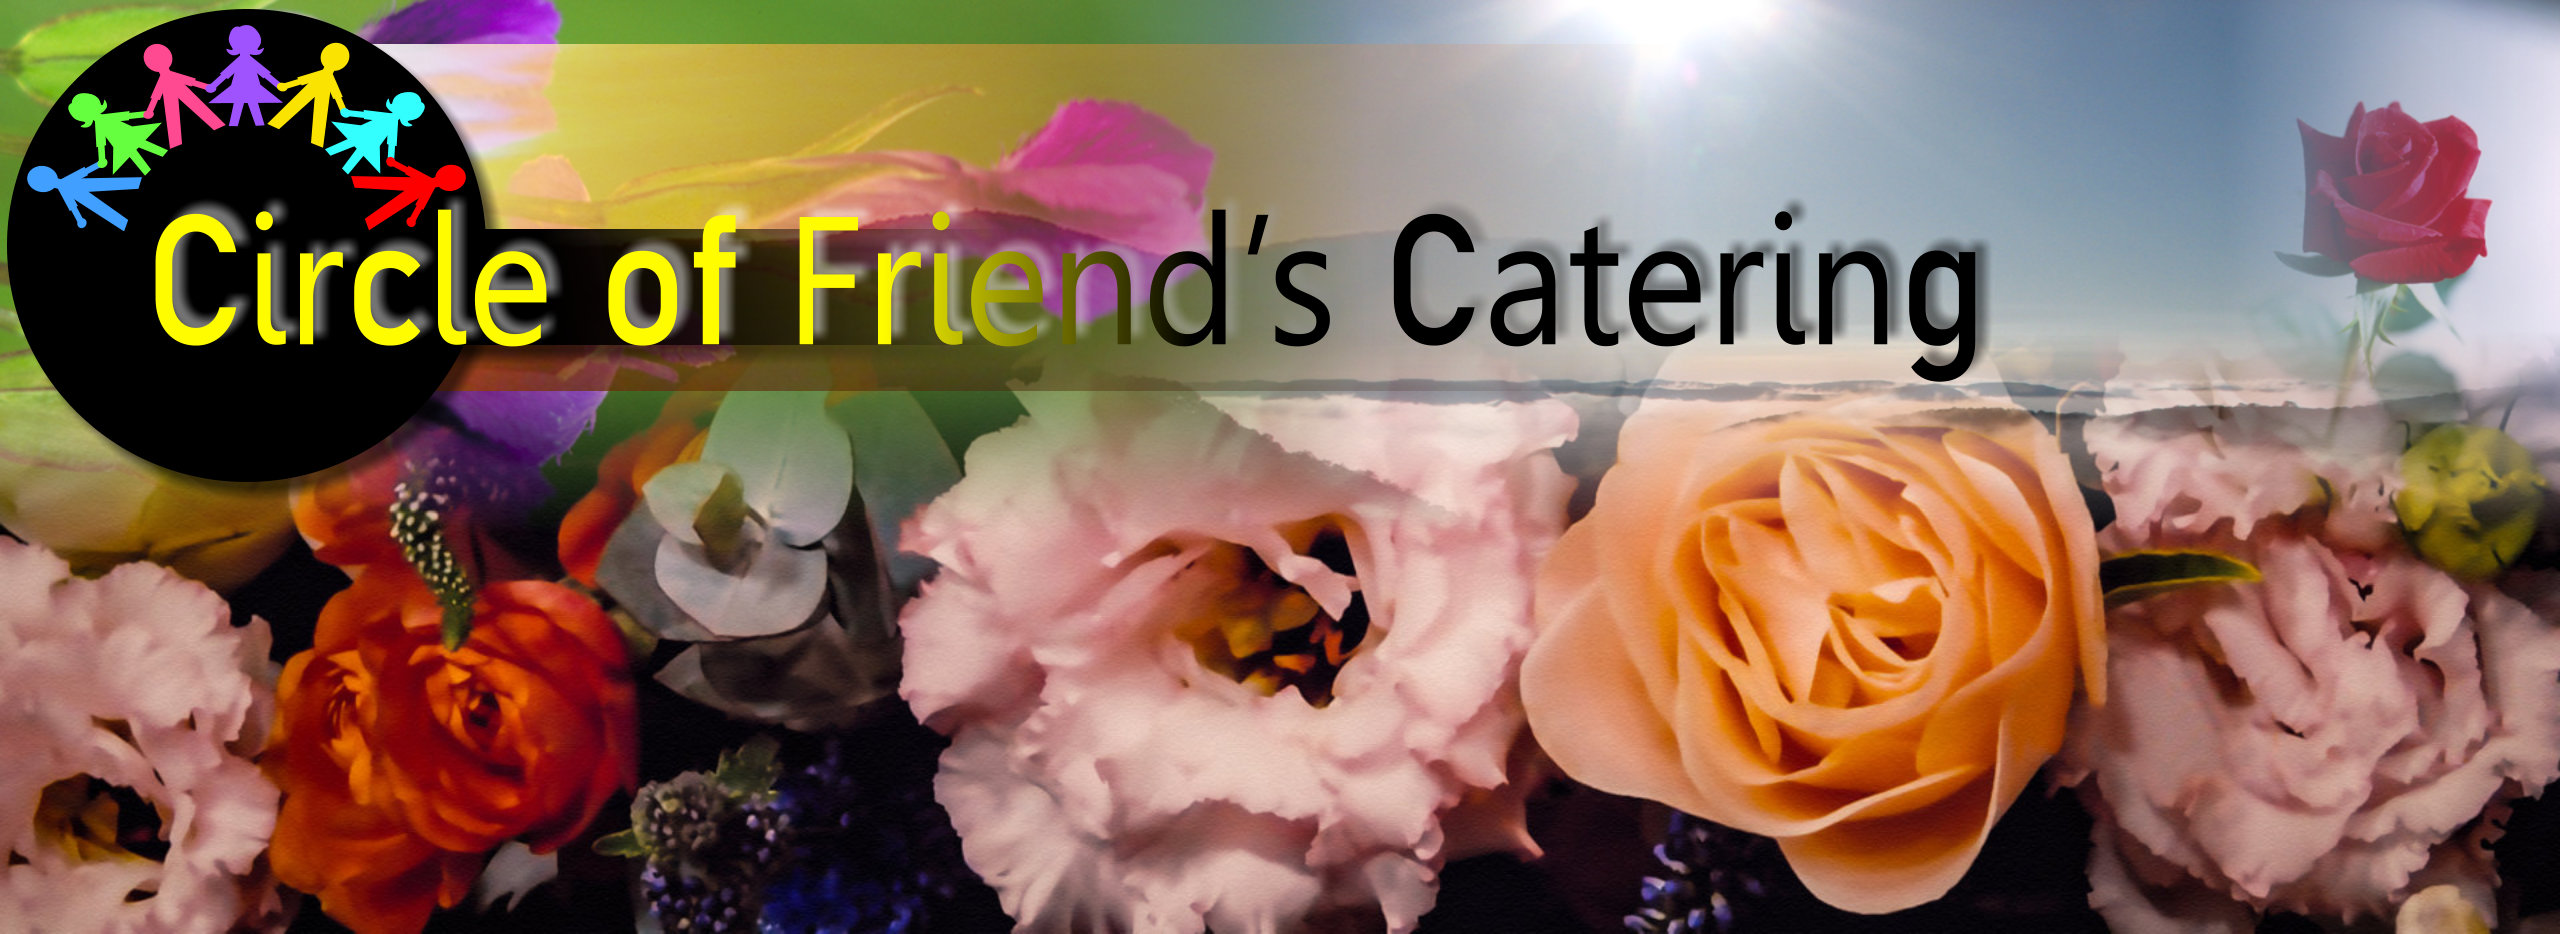 circle of friends catering services